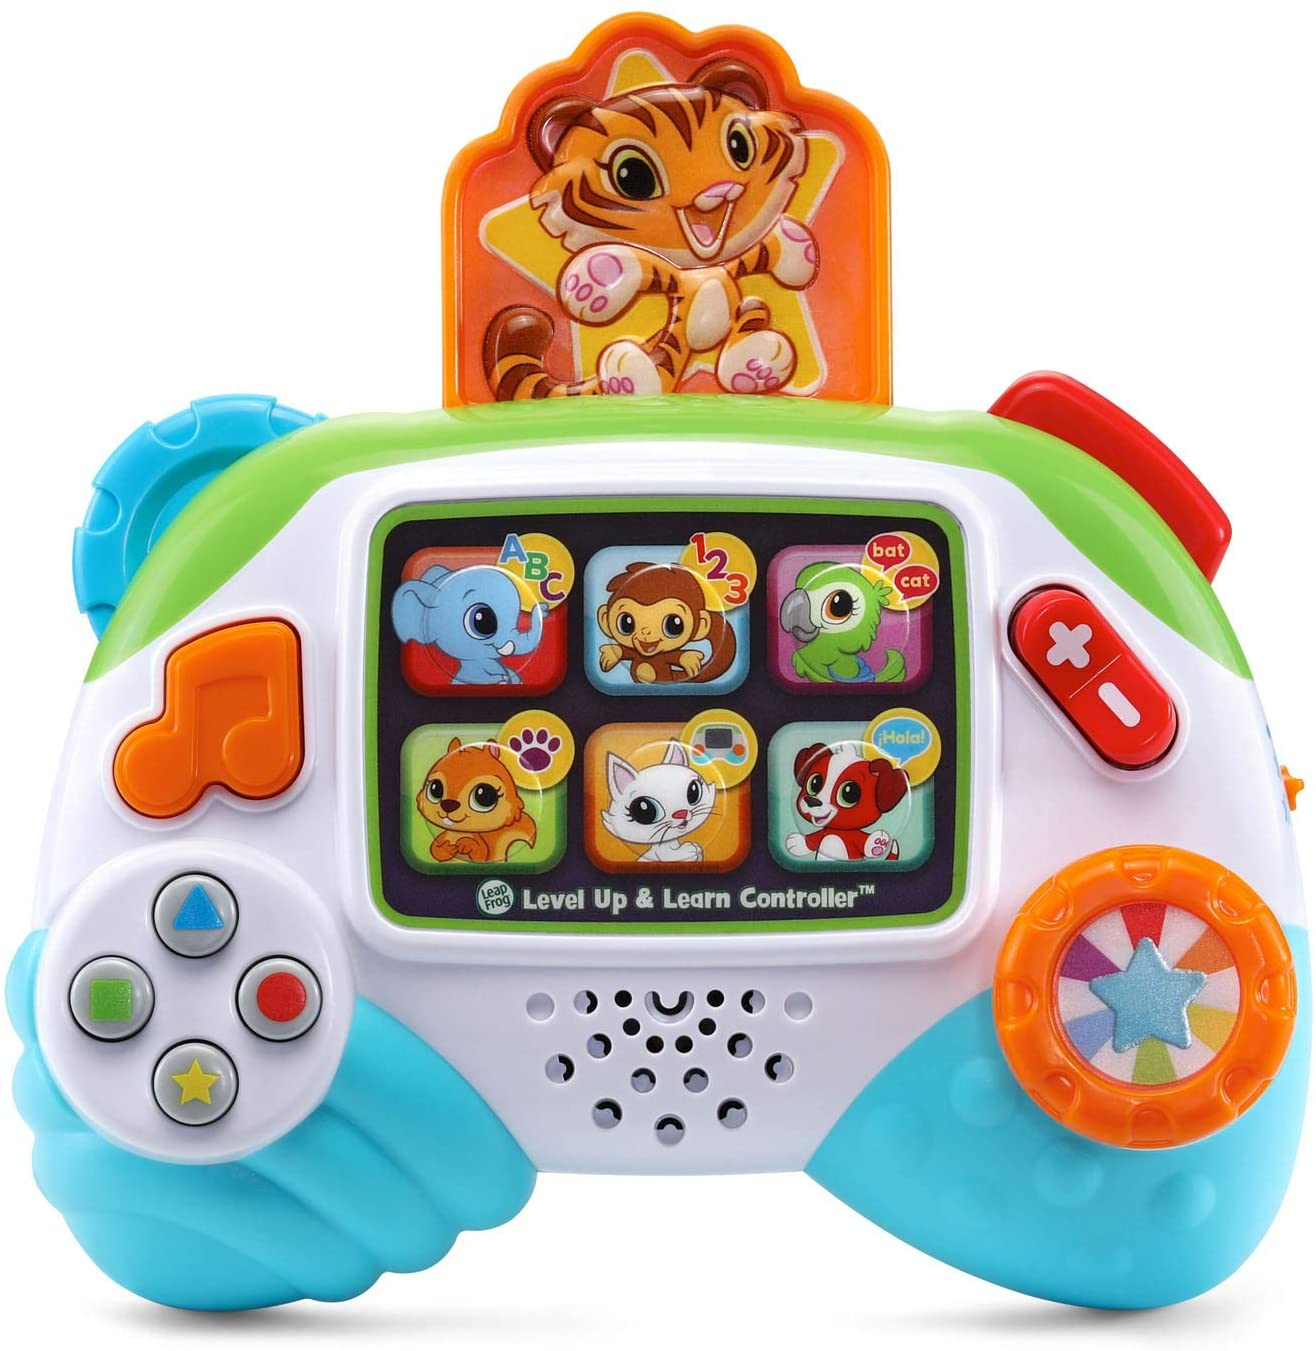 LeapFrog Level Up and Learn Controller Only $9.29 (Reg. $15)